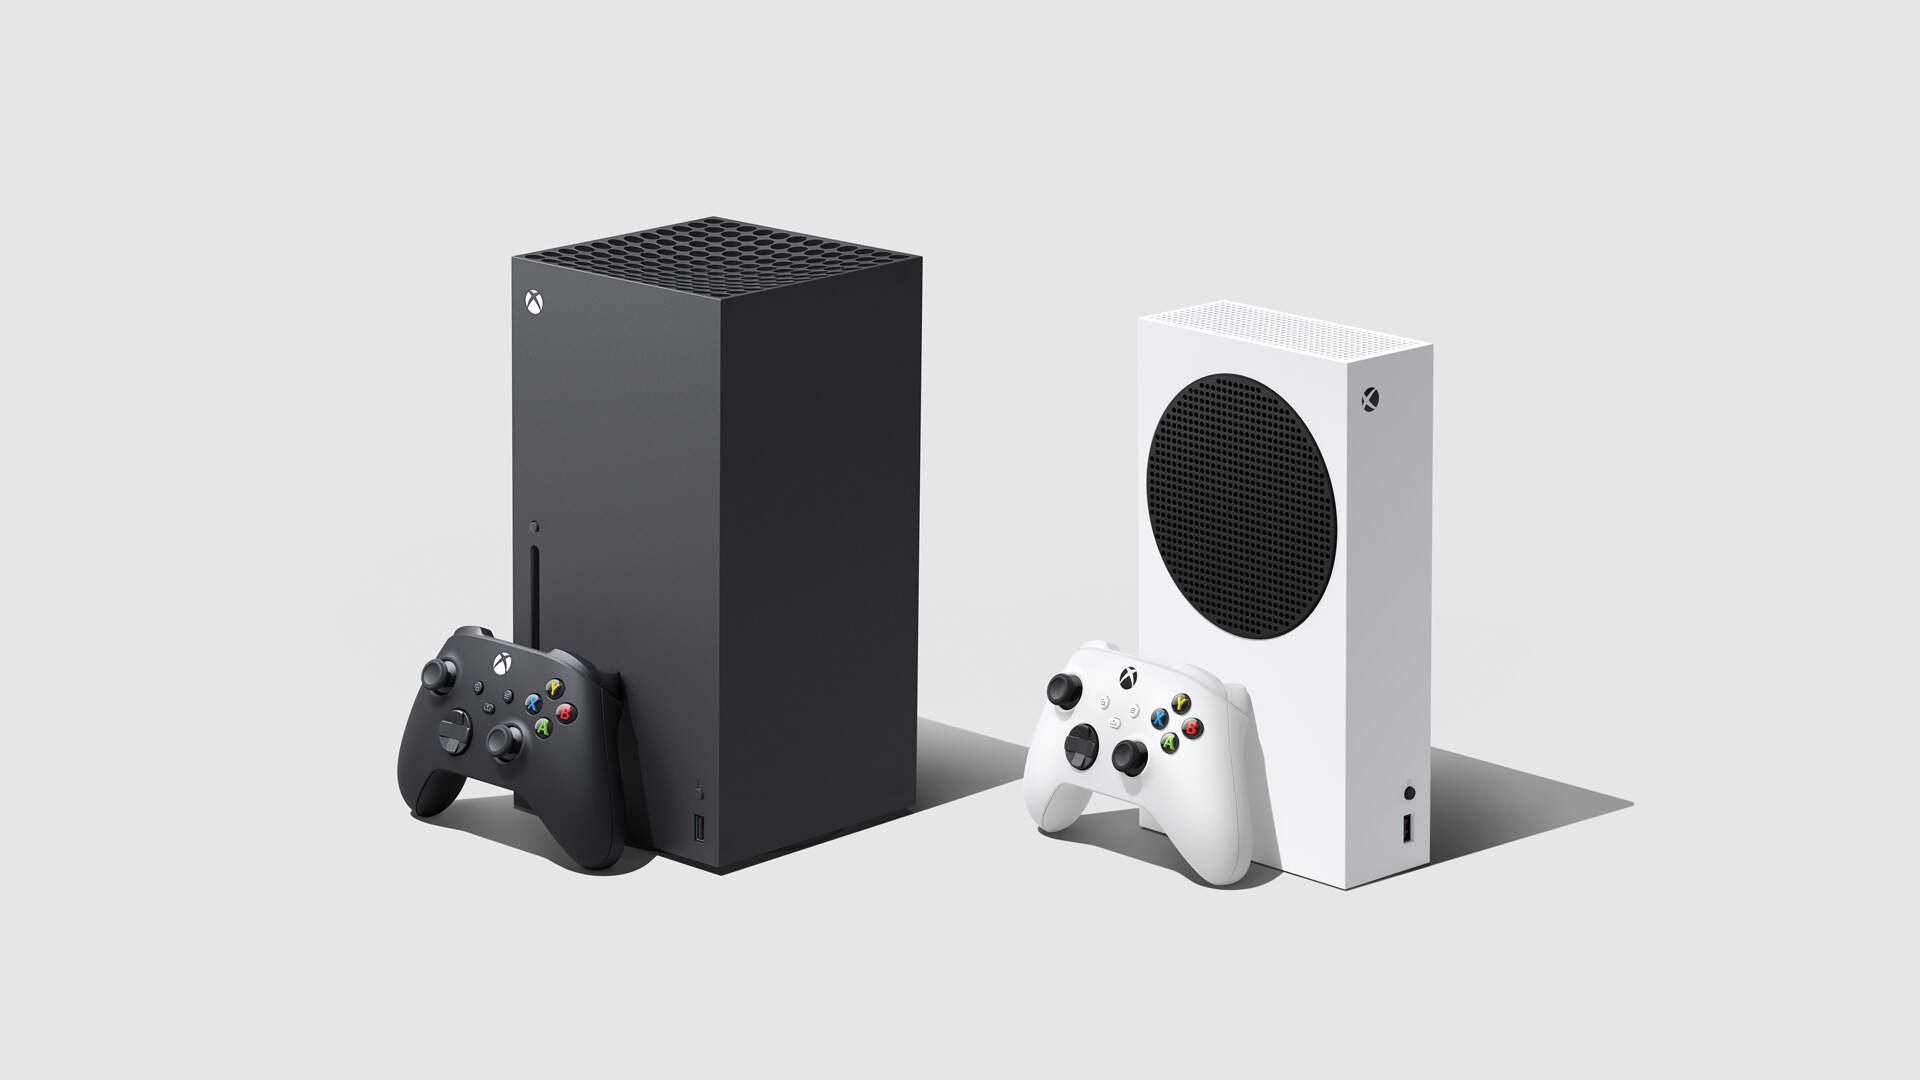 Xbox Series X Optimized Games Will Have Fast Fixes and More Quick Resume Support, Microsoft Says